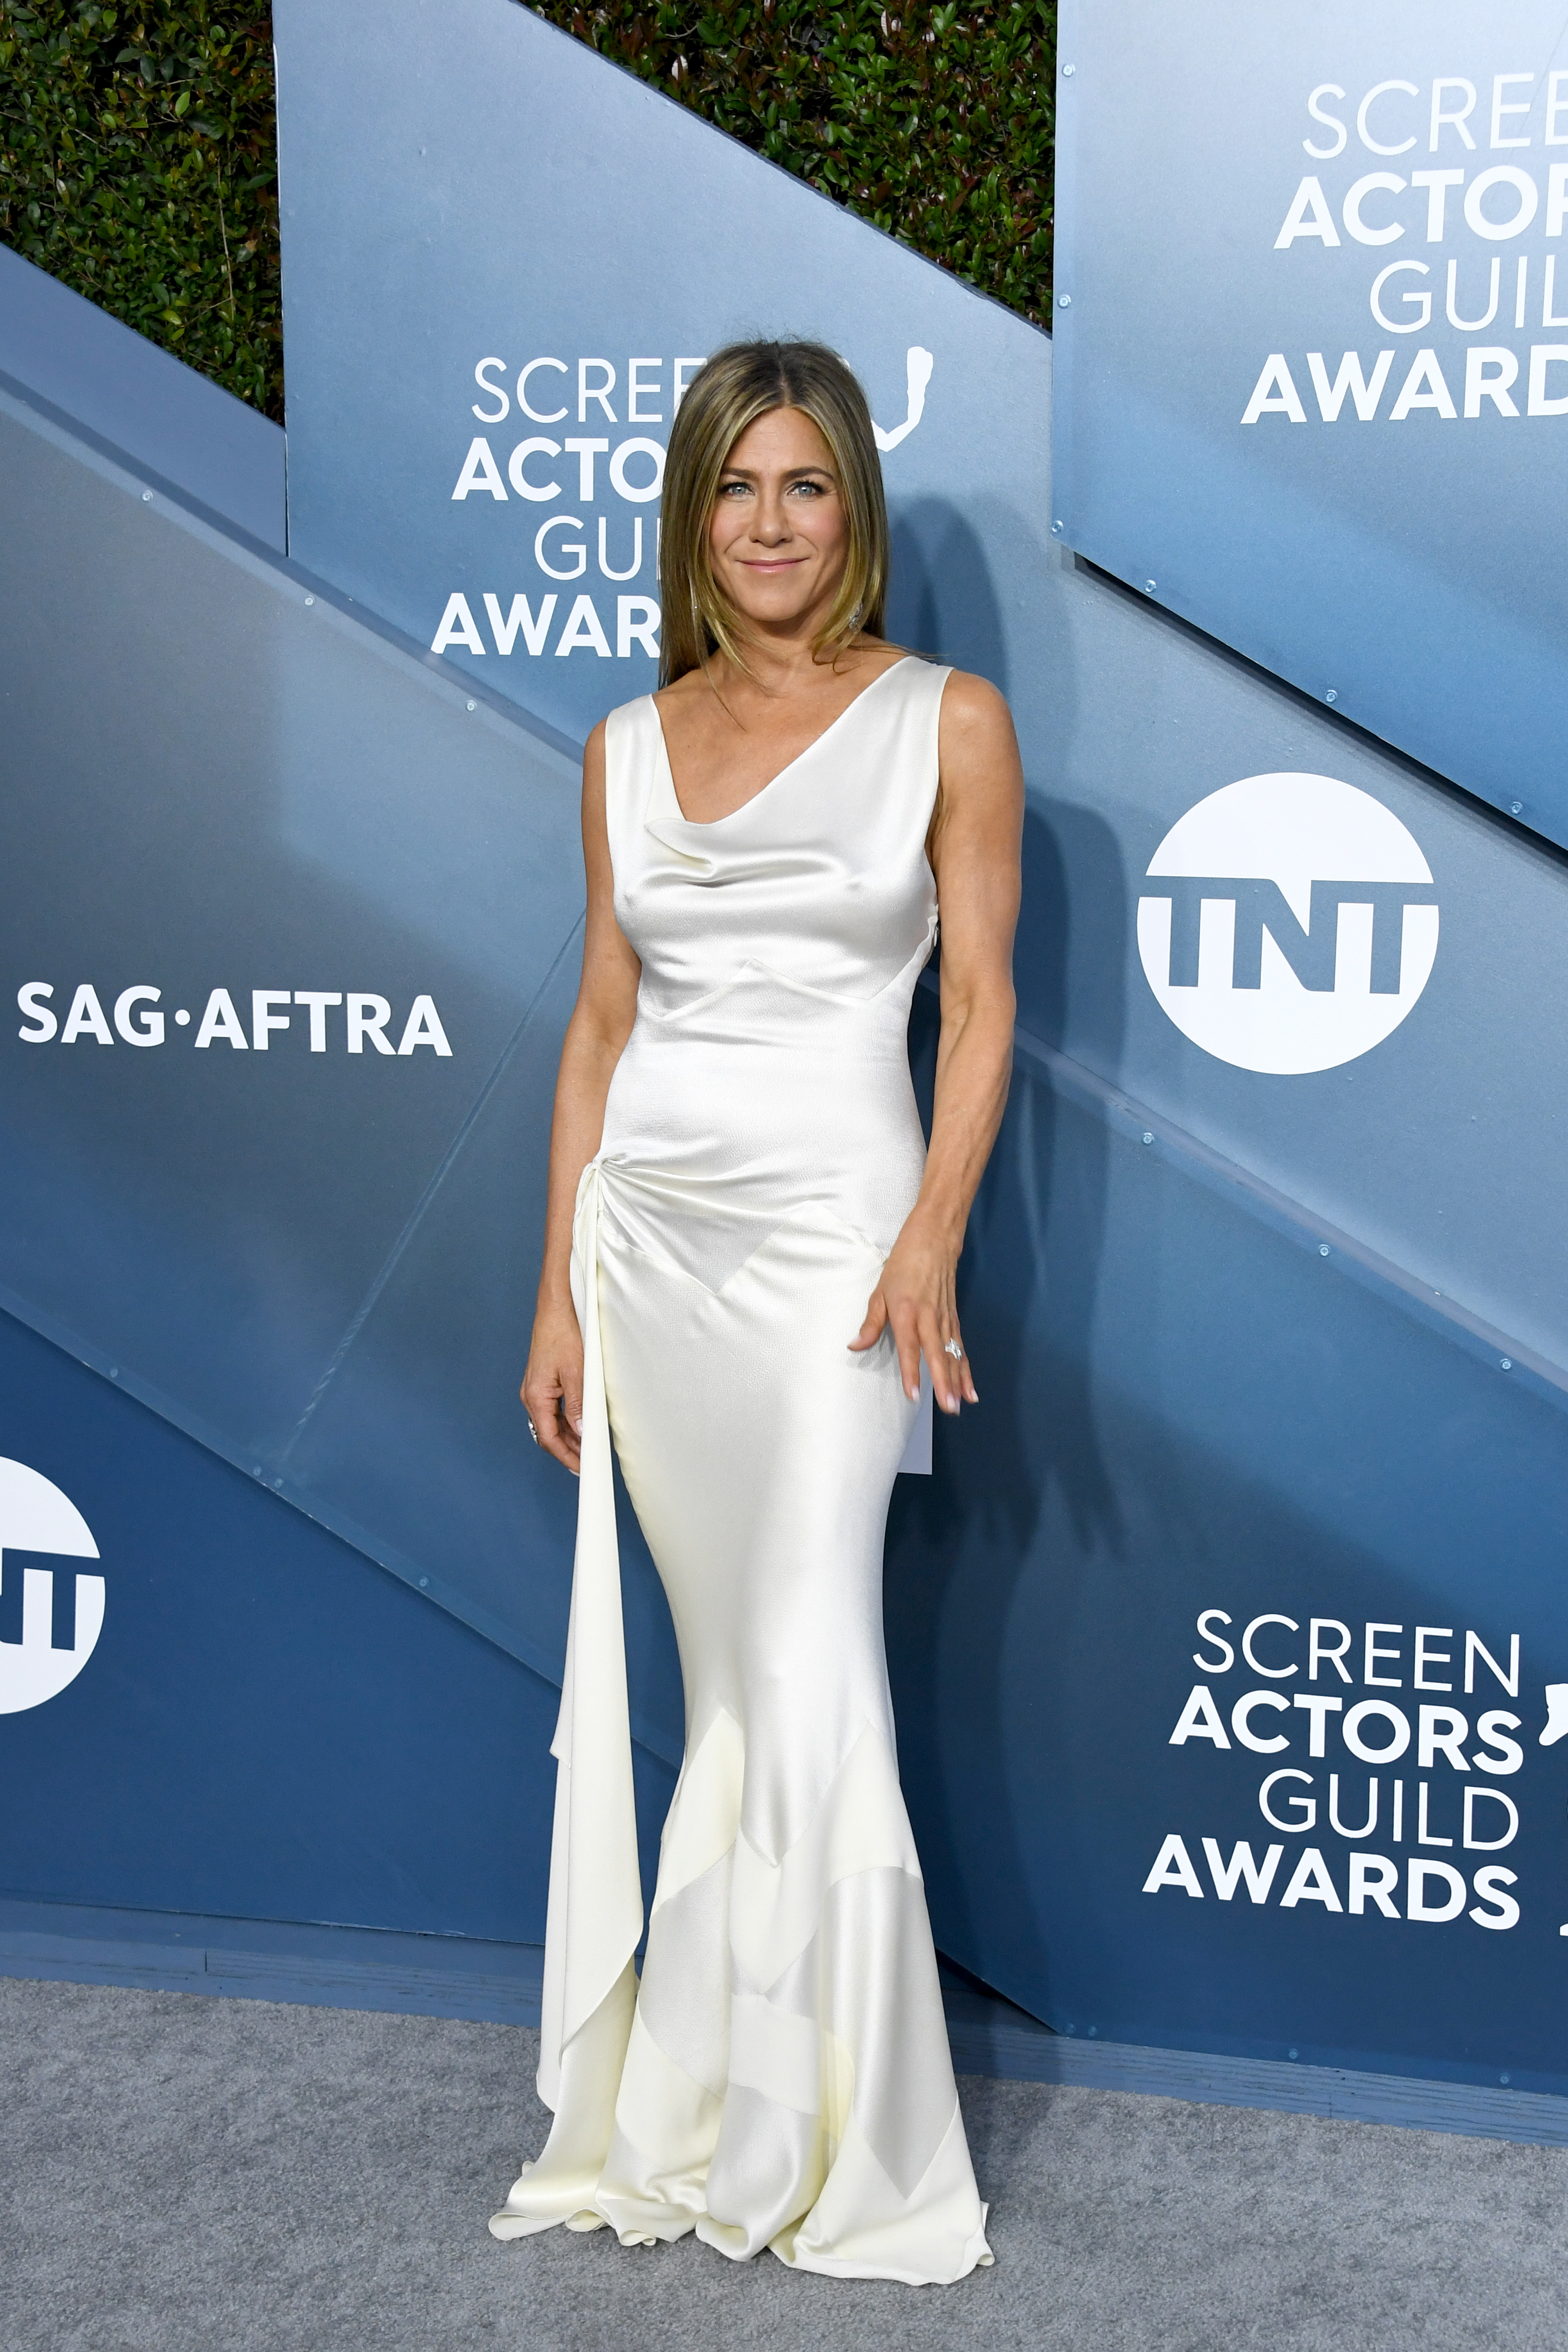 LOS ANGELES, CALIFORNIA - JANUARY 19: Jennifer Aniston attends the 26th Annual Screen ActorsGuild Awards at The Shrine Auditorium on January 19, 2020 in Los Angeles, California. (Photo by Jon Kopaloff/Getty Images)